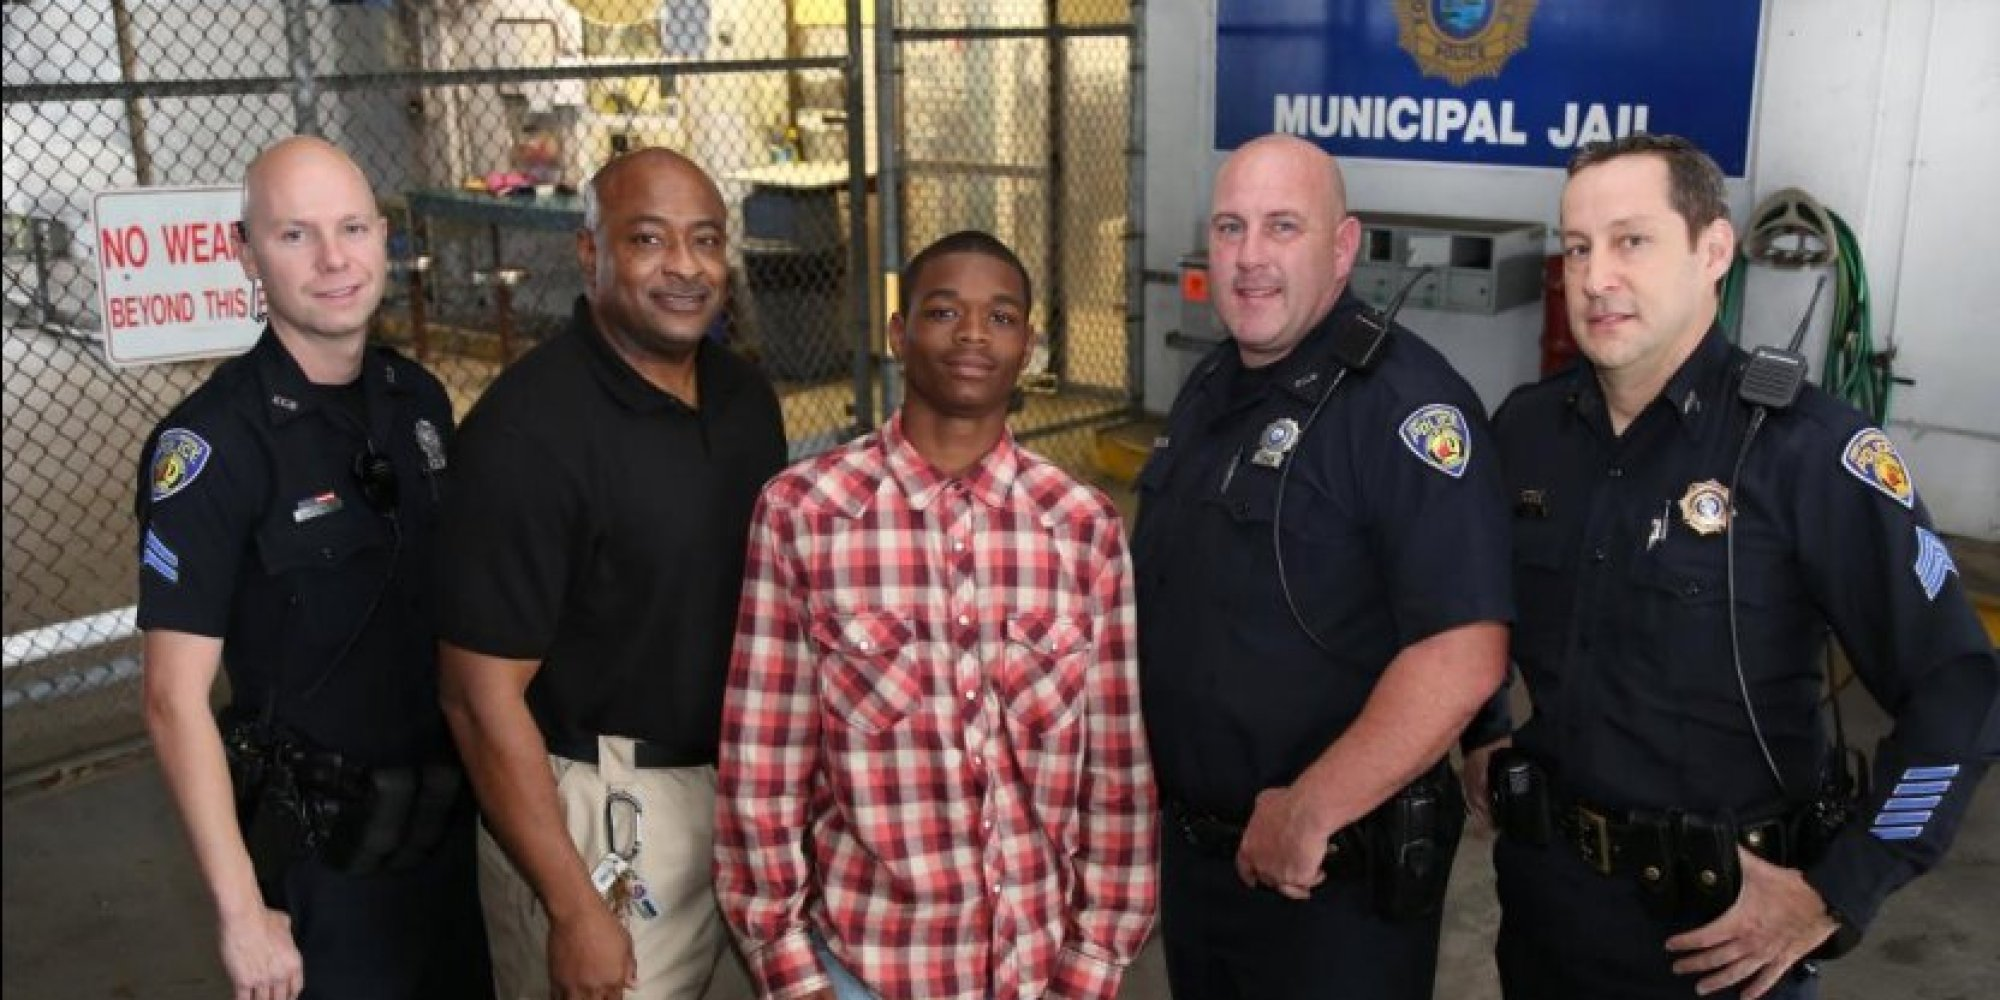 Arrested Teen Saves Life Police ficer Booking Him